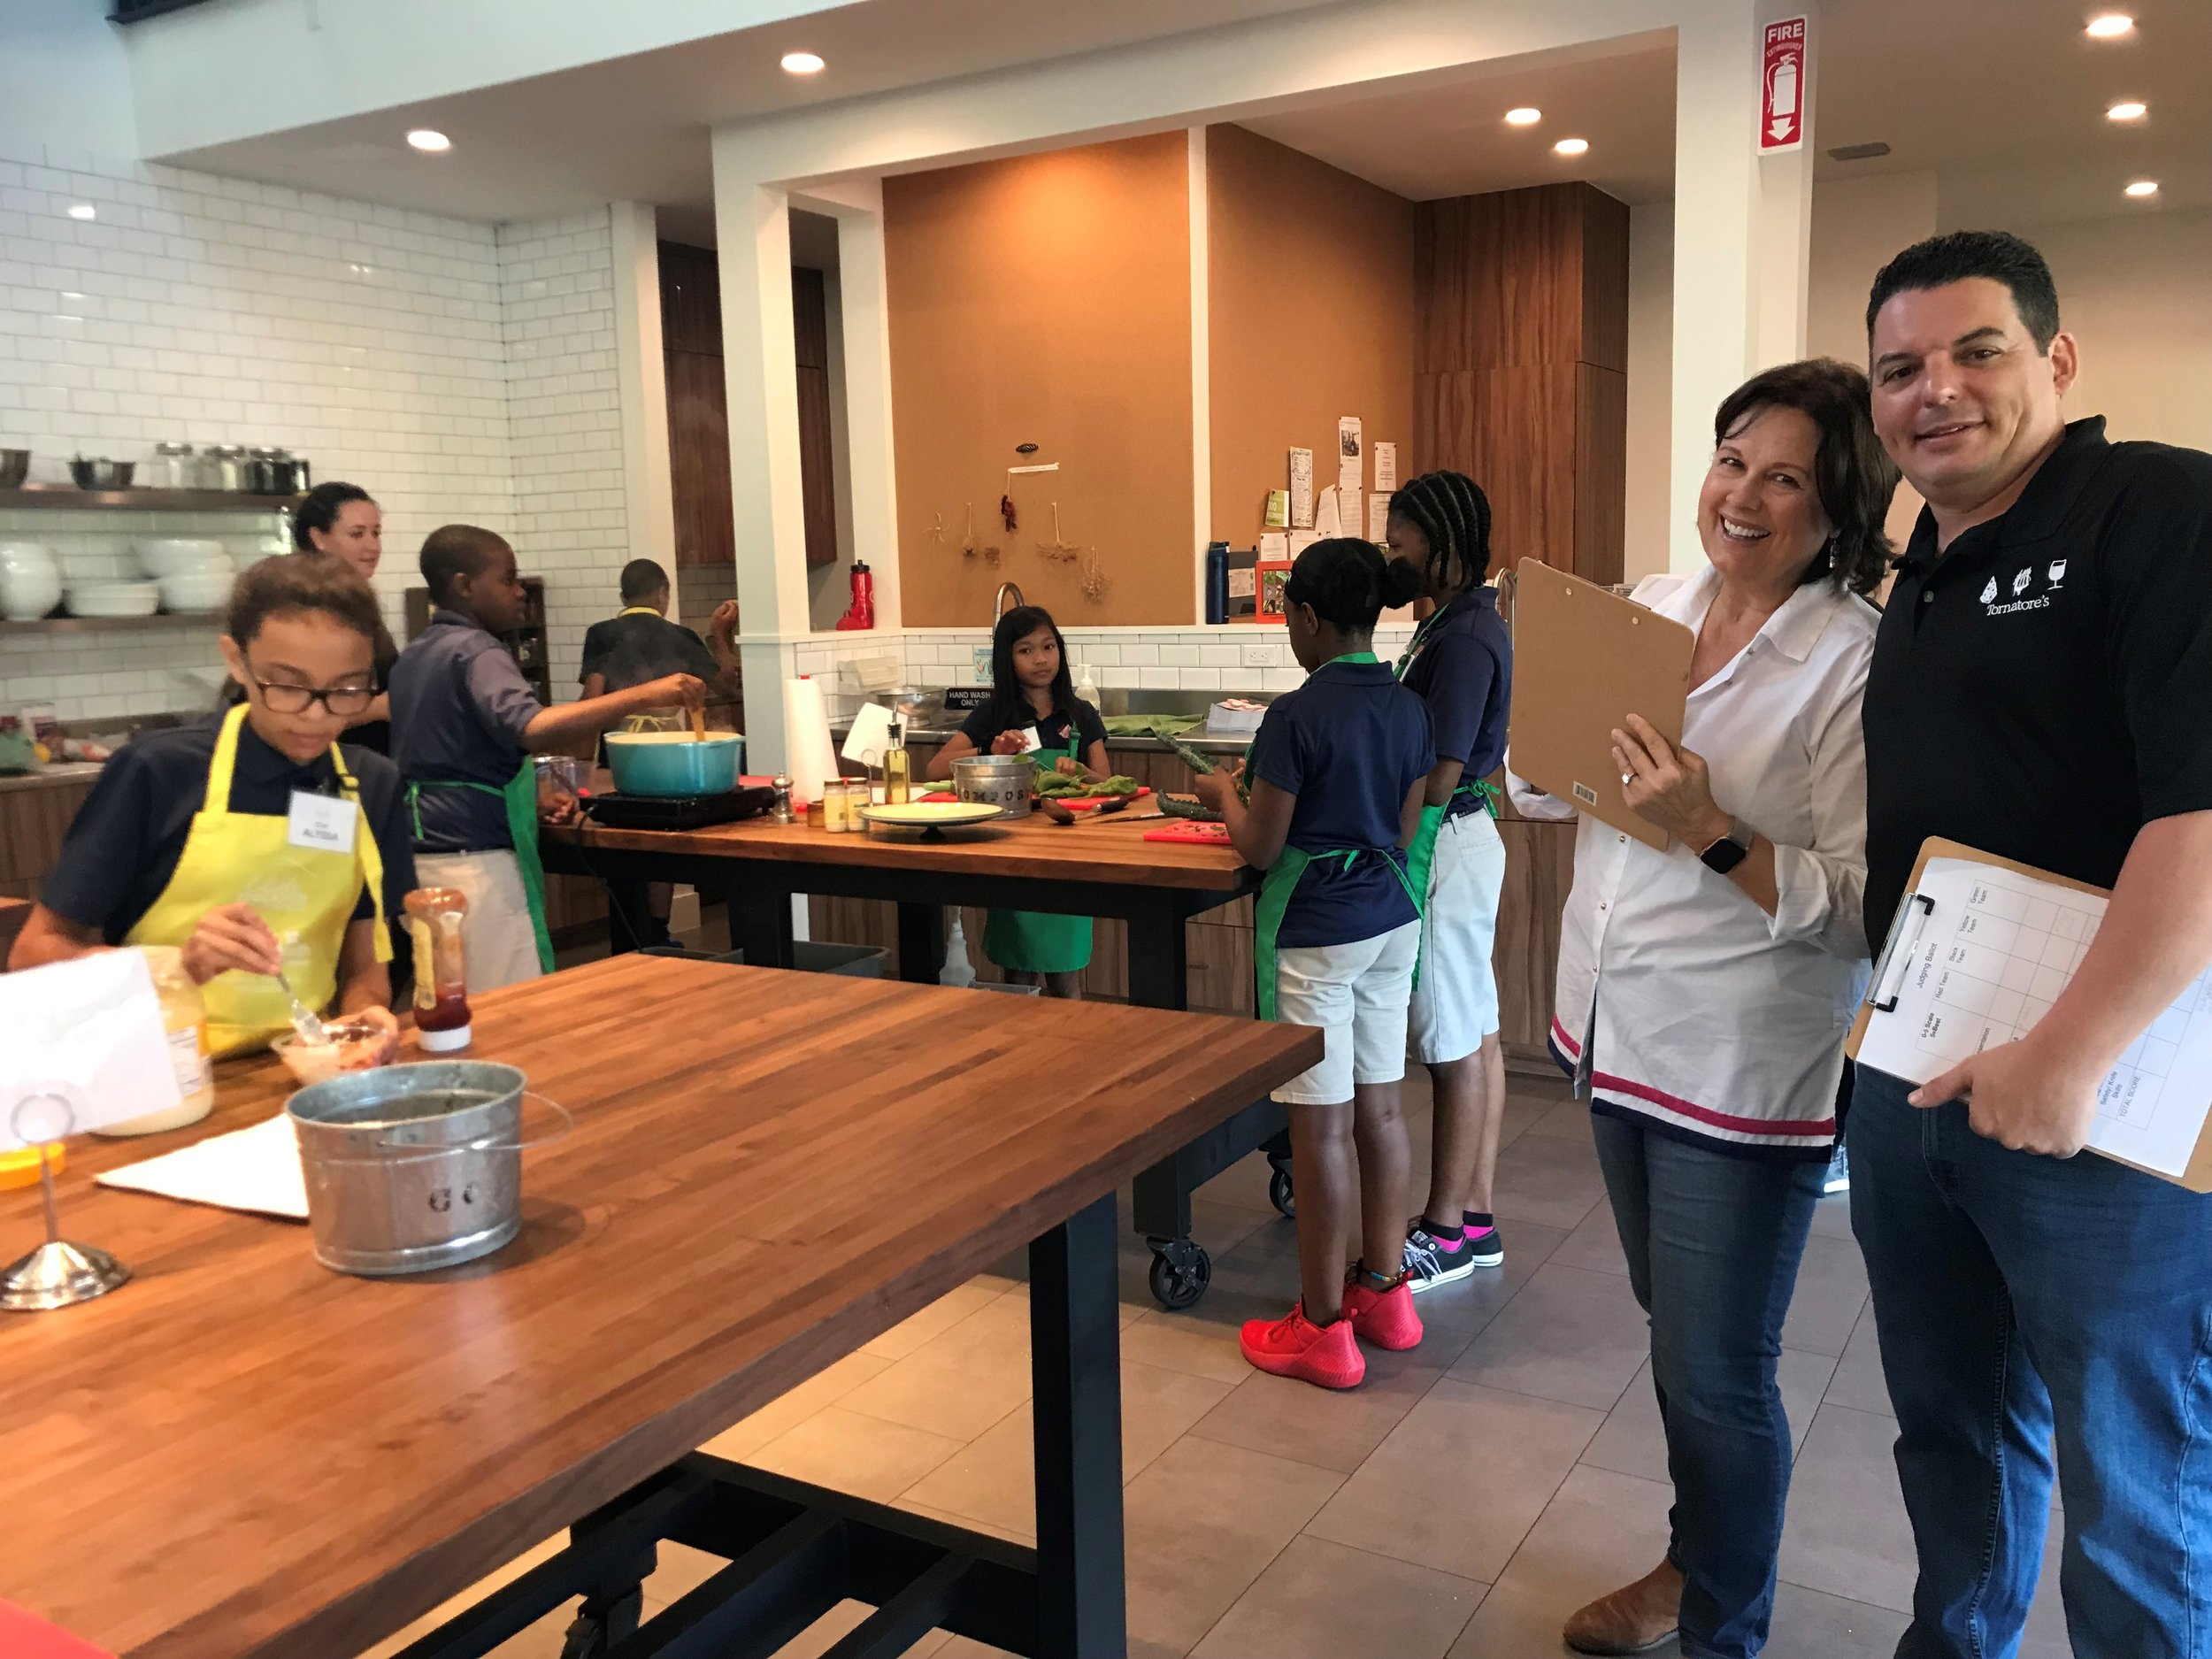 Junior chefs and judges at work in the Emeril Lagasse Foundation Kitchen House & Culinary Garden